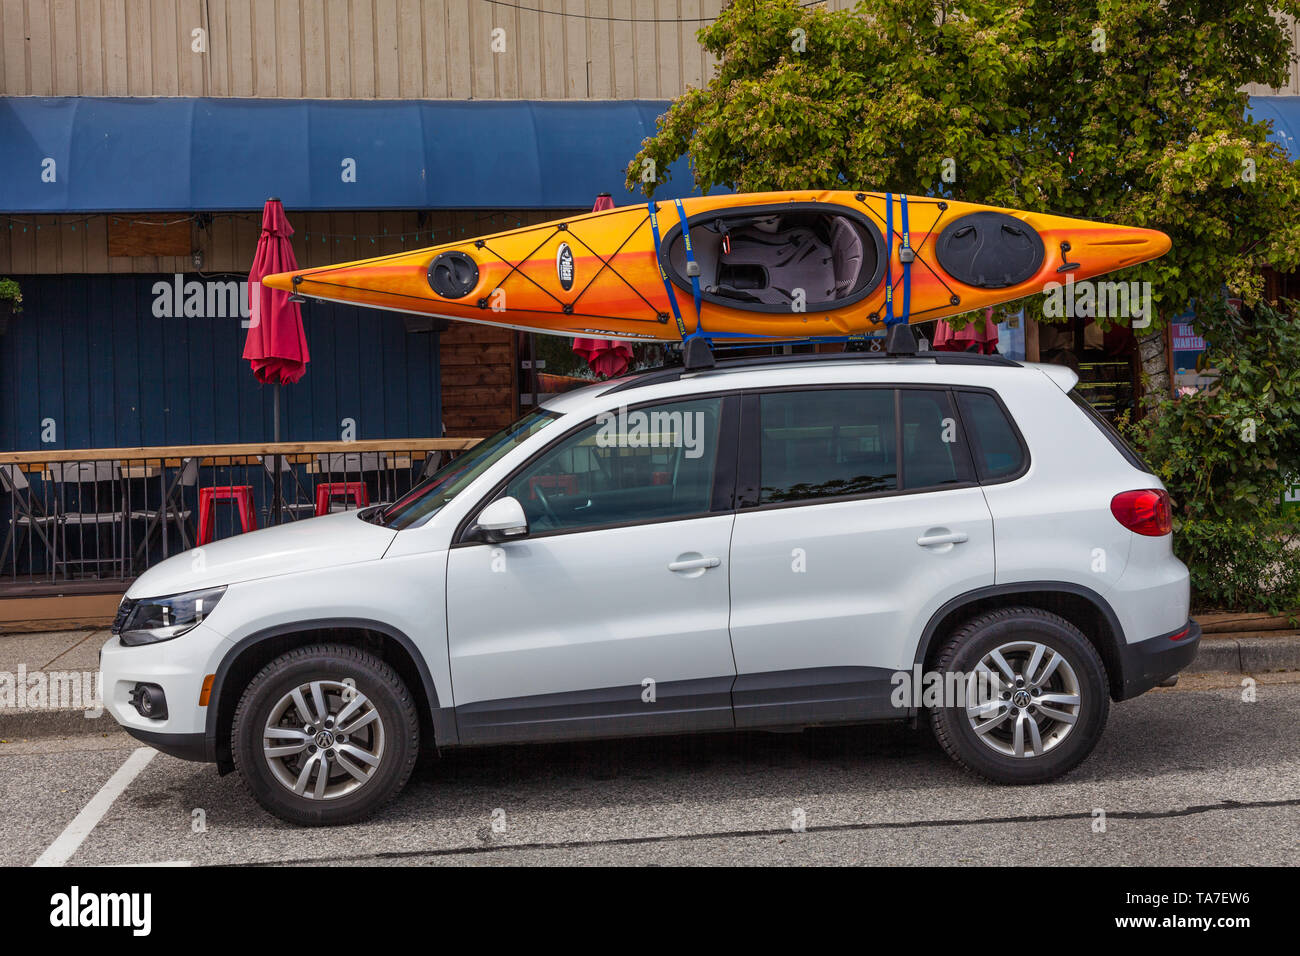 Sport Kayak mounted on the roof of a white vehicle on the Sunshine Coast of British Columbia Canada - Stock Image